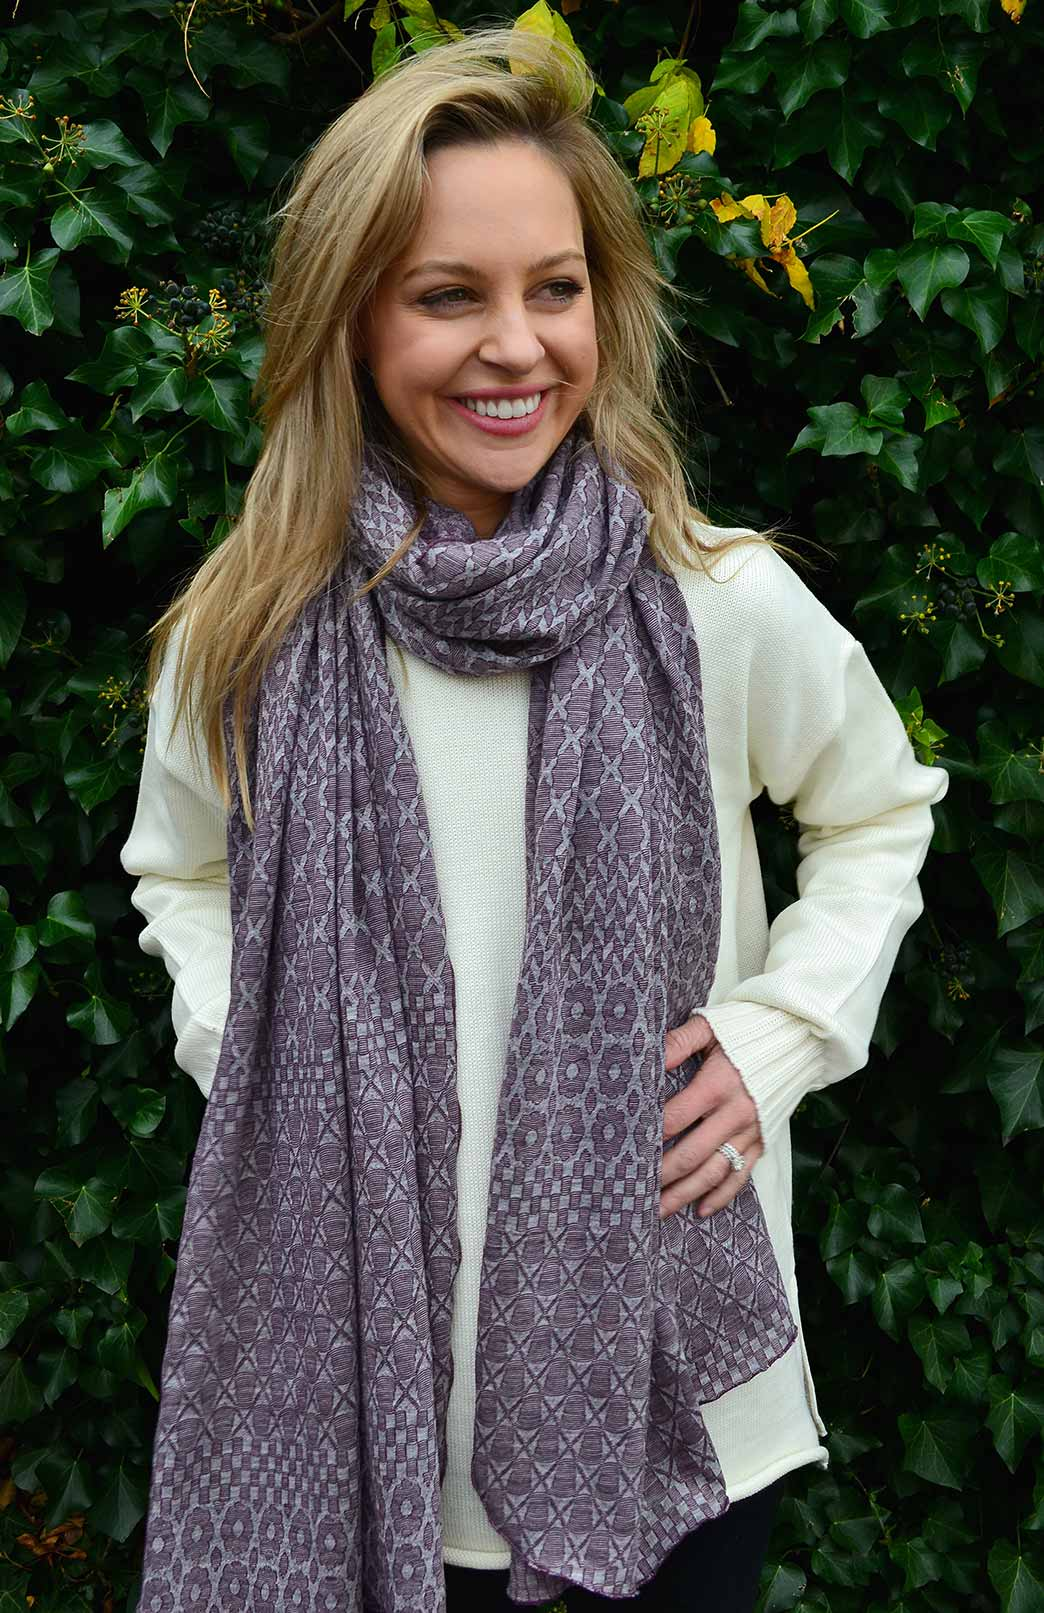 Patterned Wrap (Limited Edition) - Women's Superfine Merino Wool Patterned Wrap - Smitten Merino Tasmania Australia